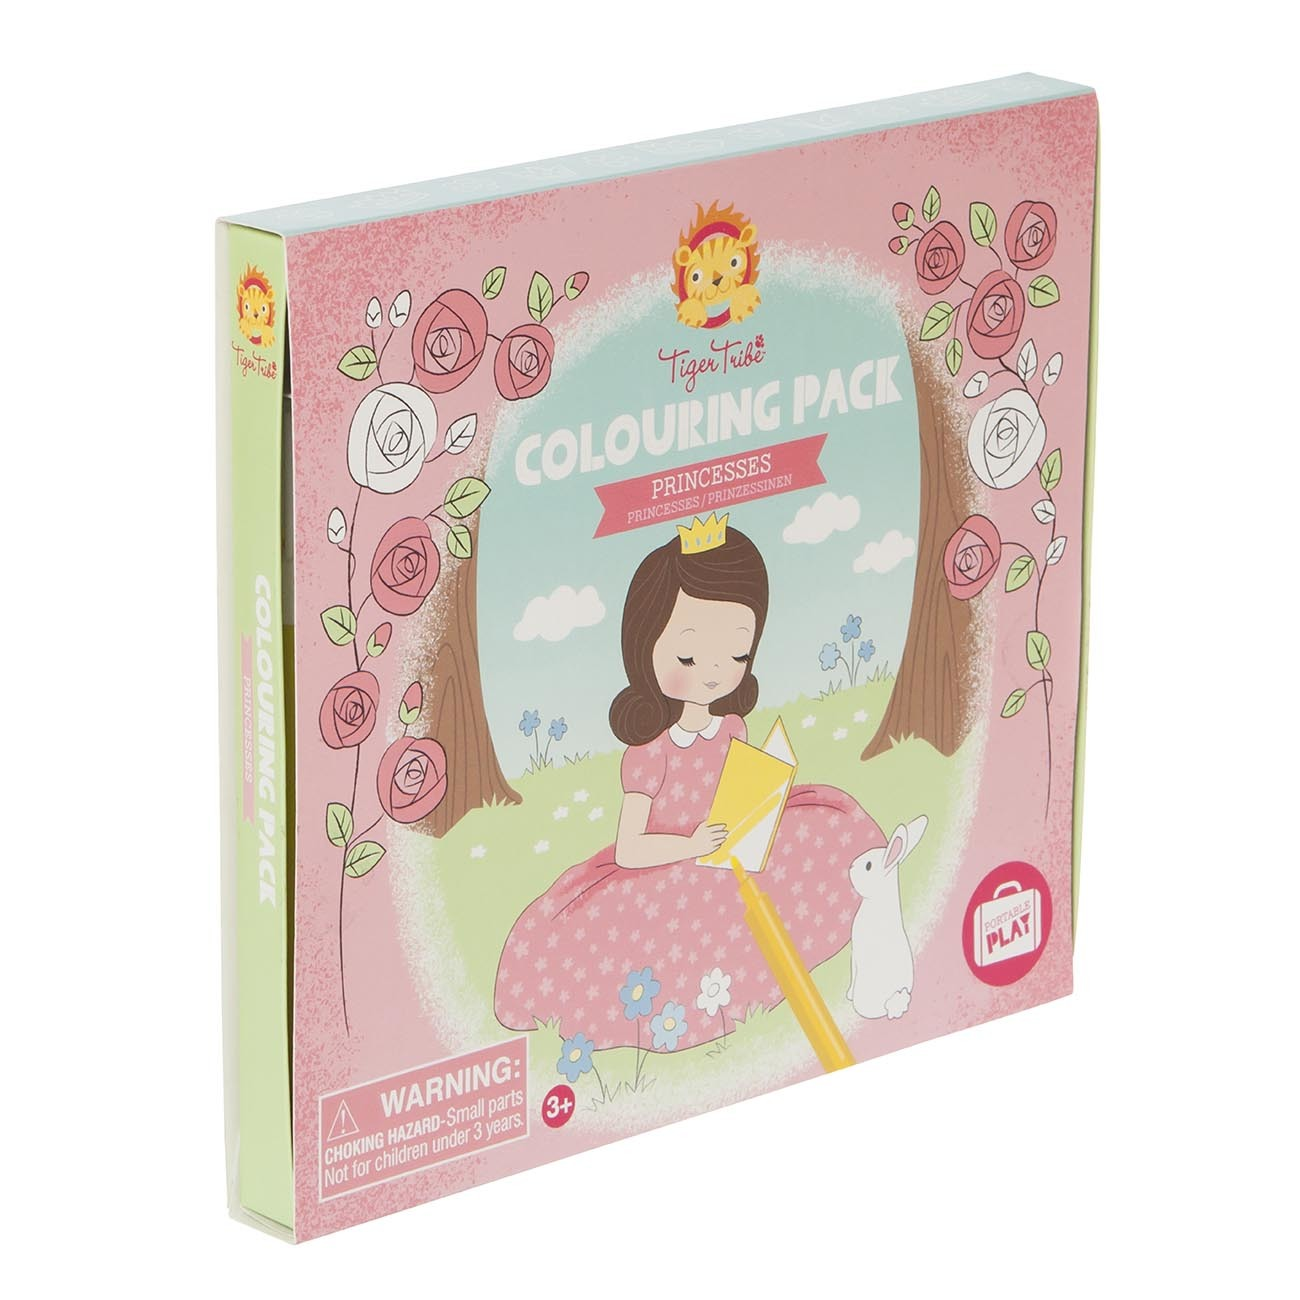 Colouring Pack with a Princesses Theme by Tiger Tribe